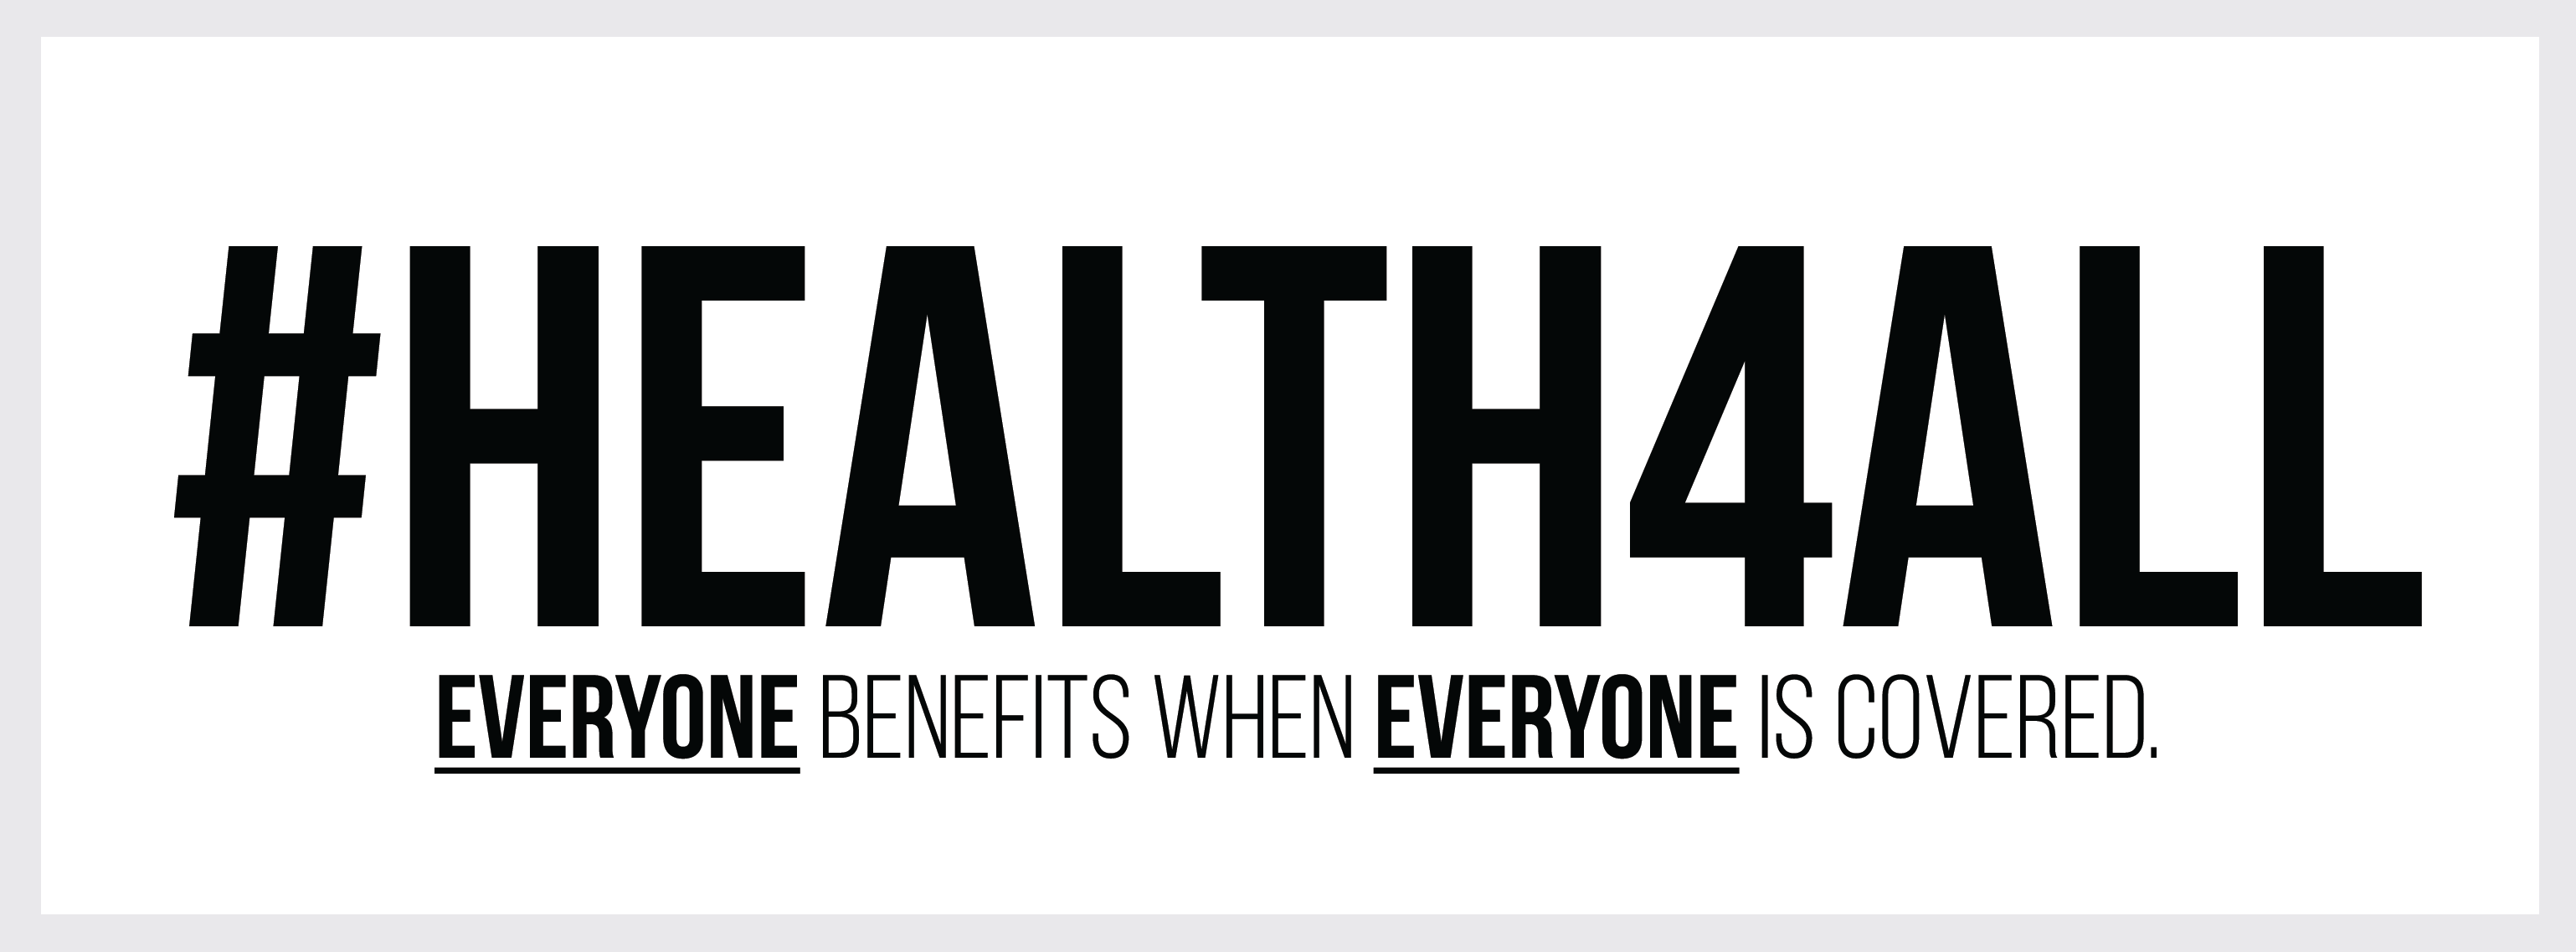 #Health4All